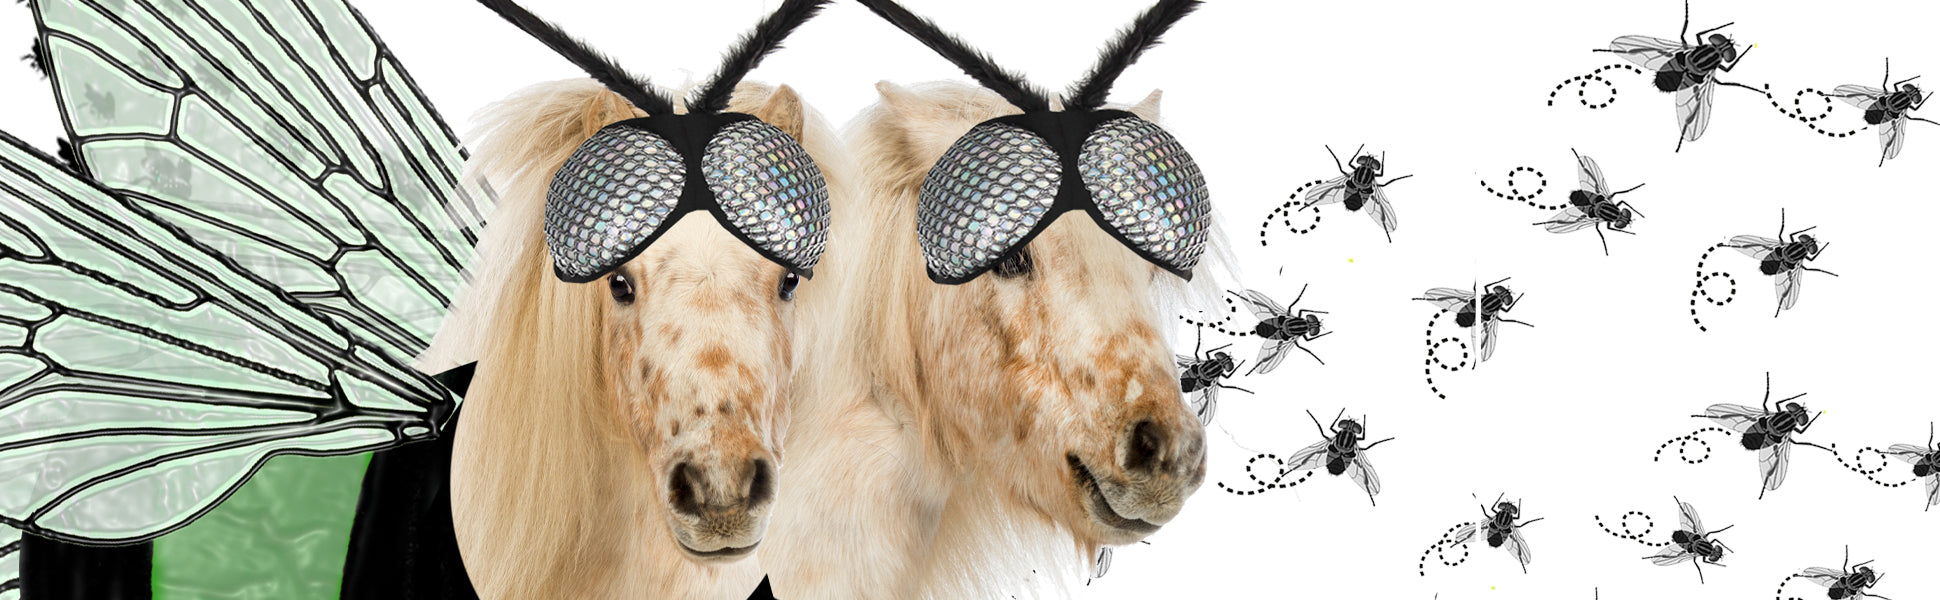 ponies dressed as horse flies